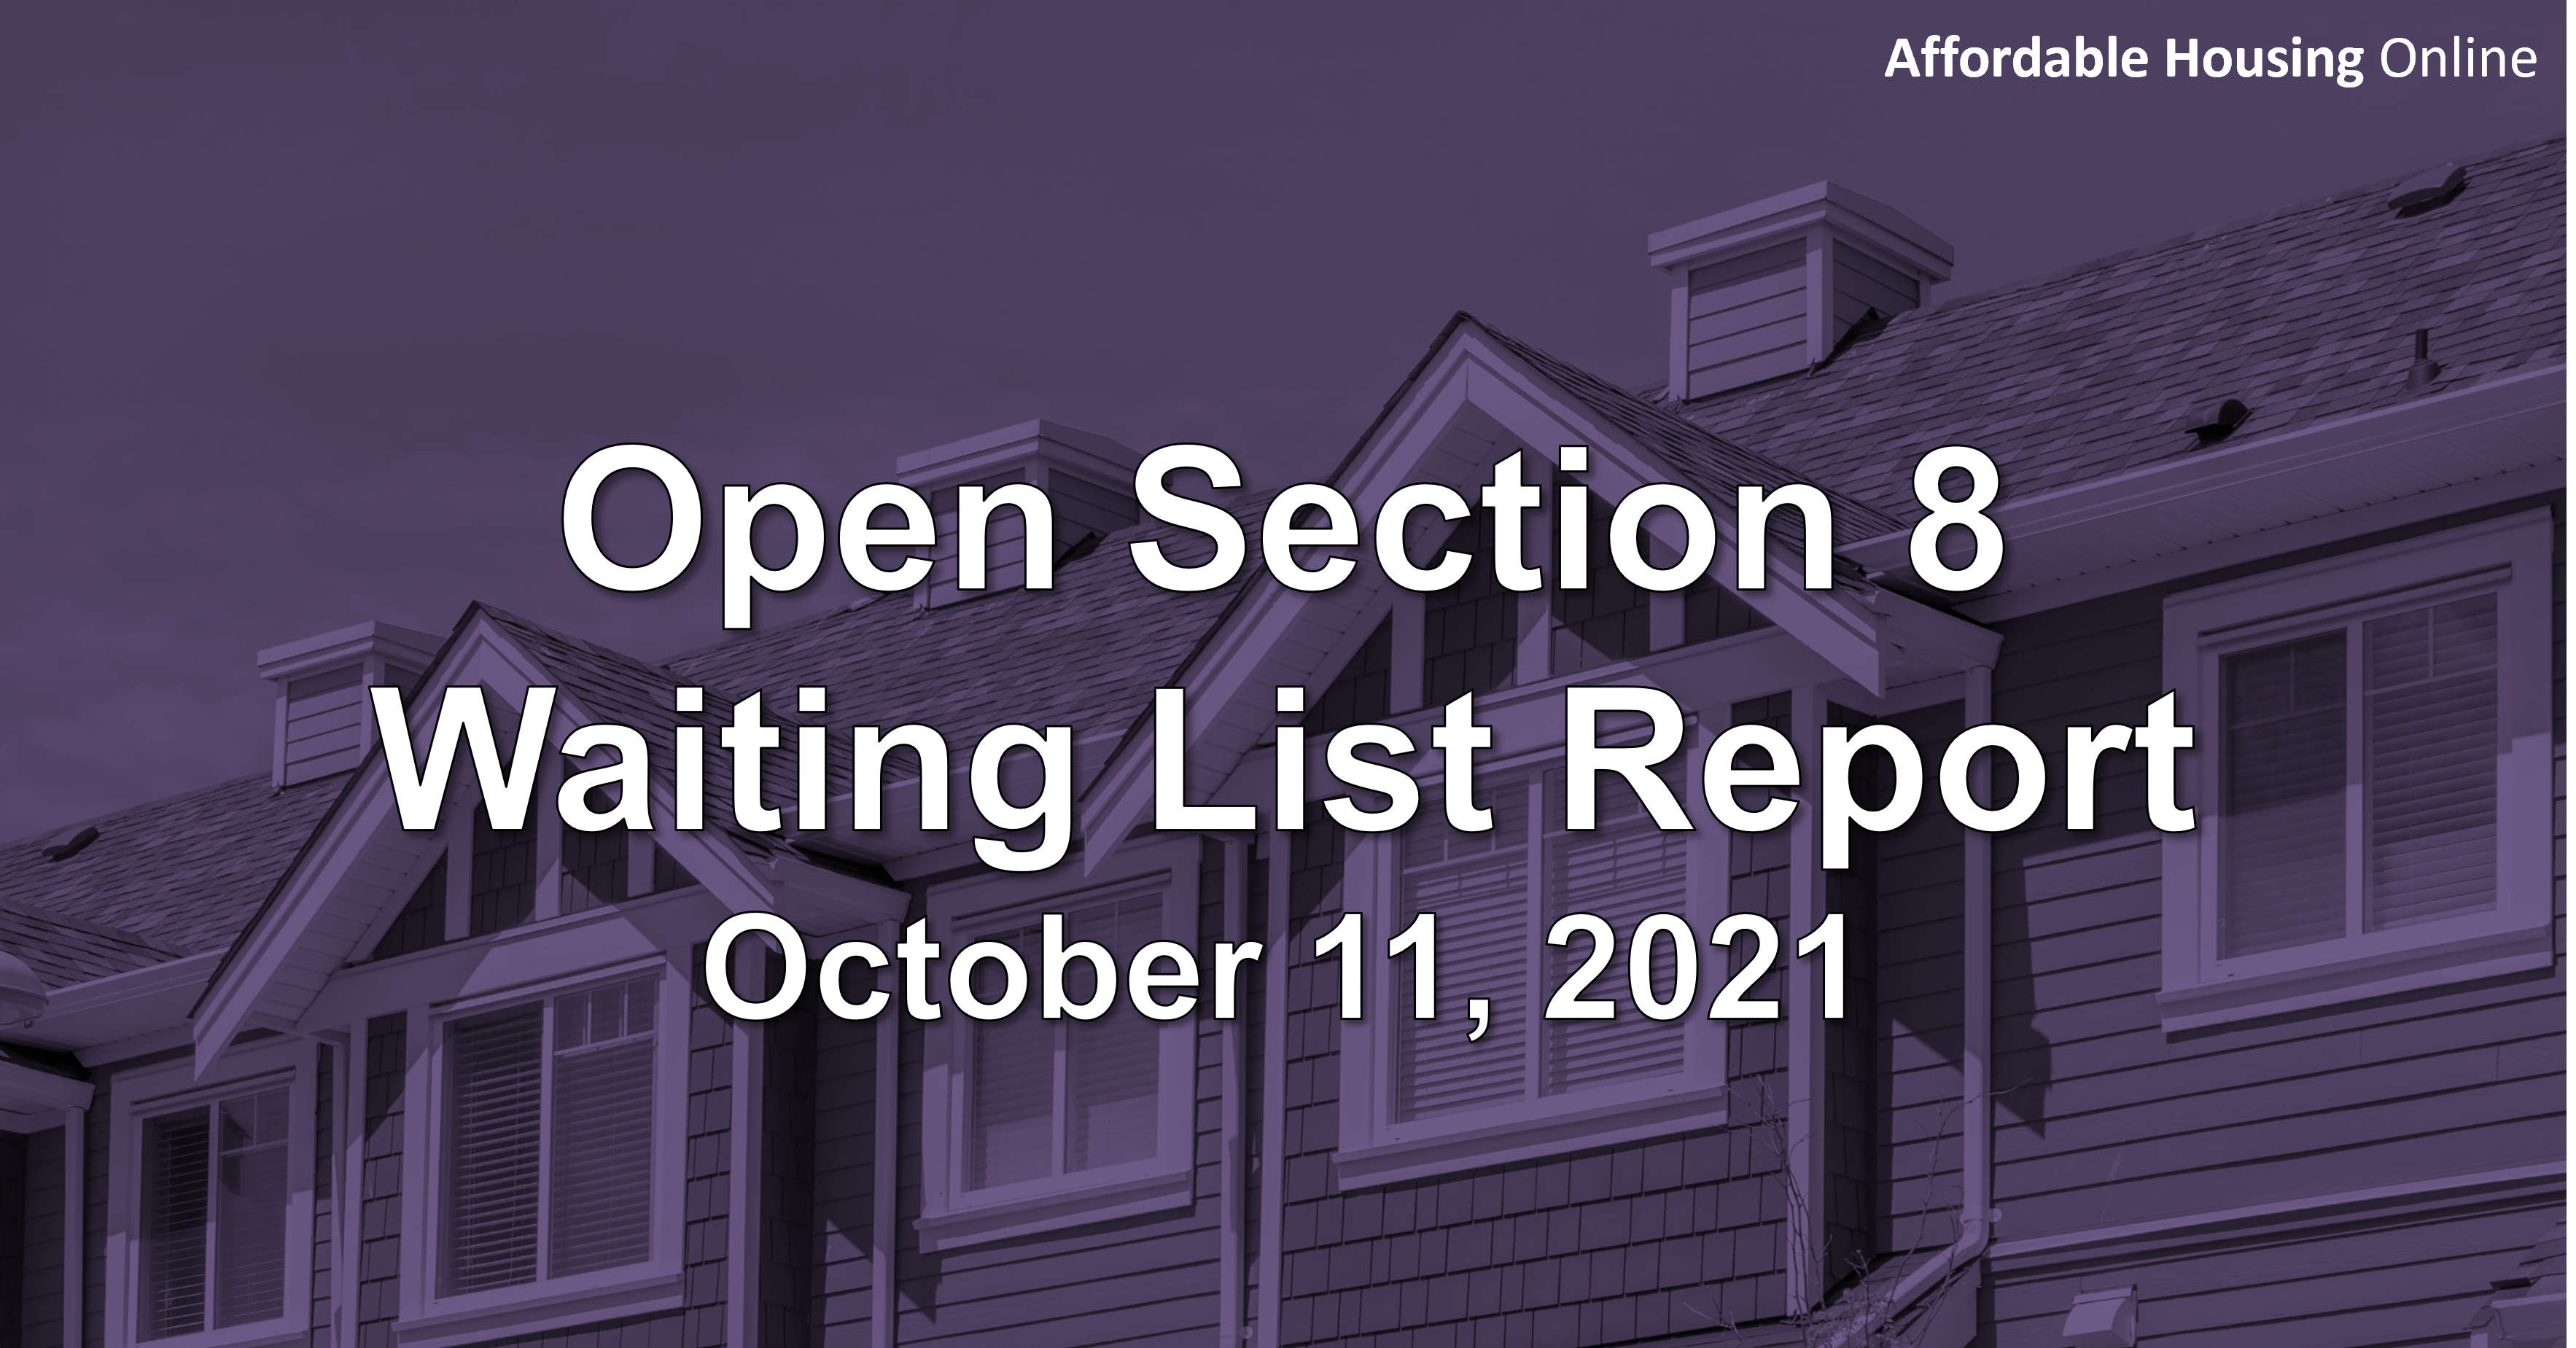 Open Section 8 Waiting List Report: October 11, 2021